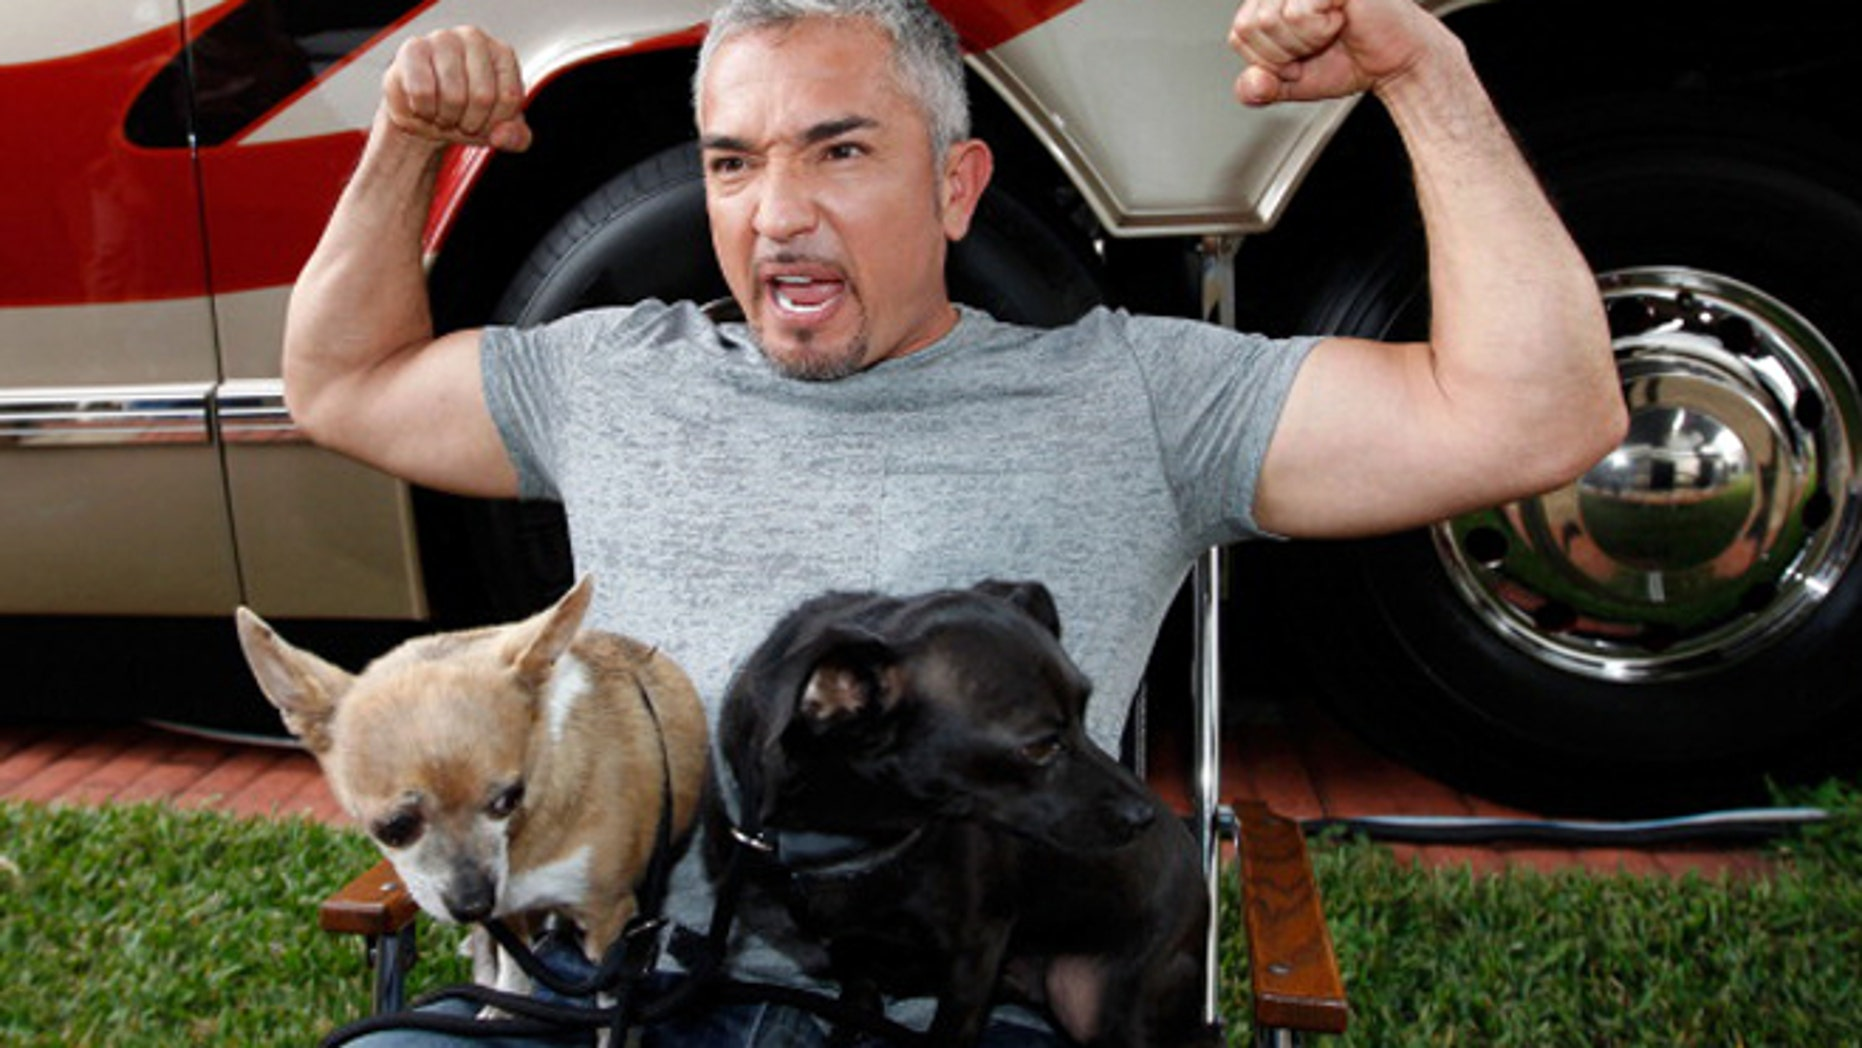 Cesar Millan on February 17, 2012 in Daytona Beach, Florida.